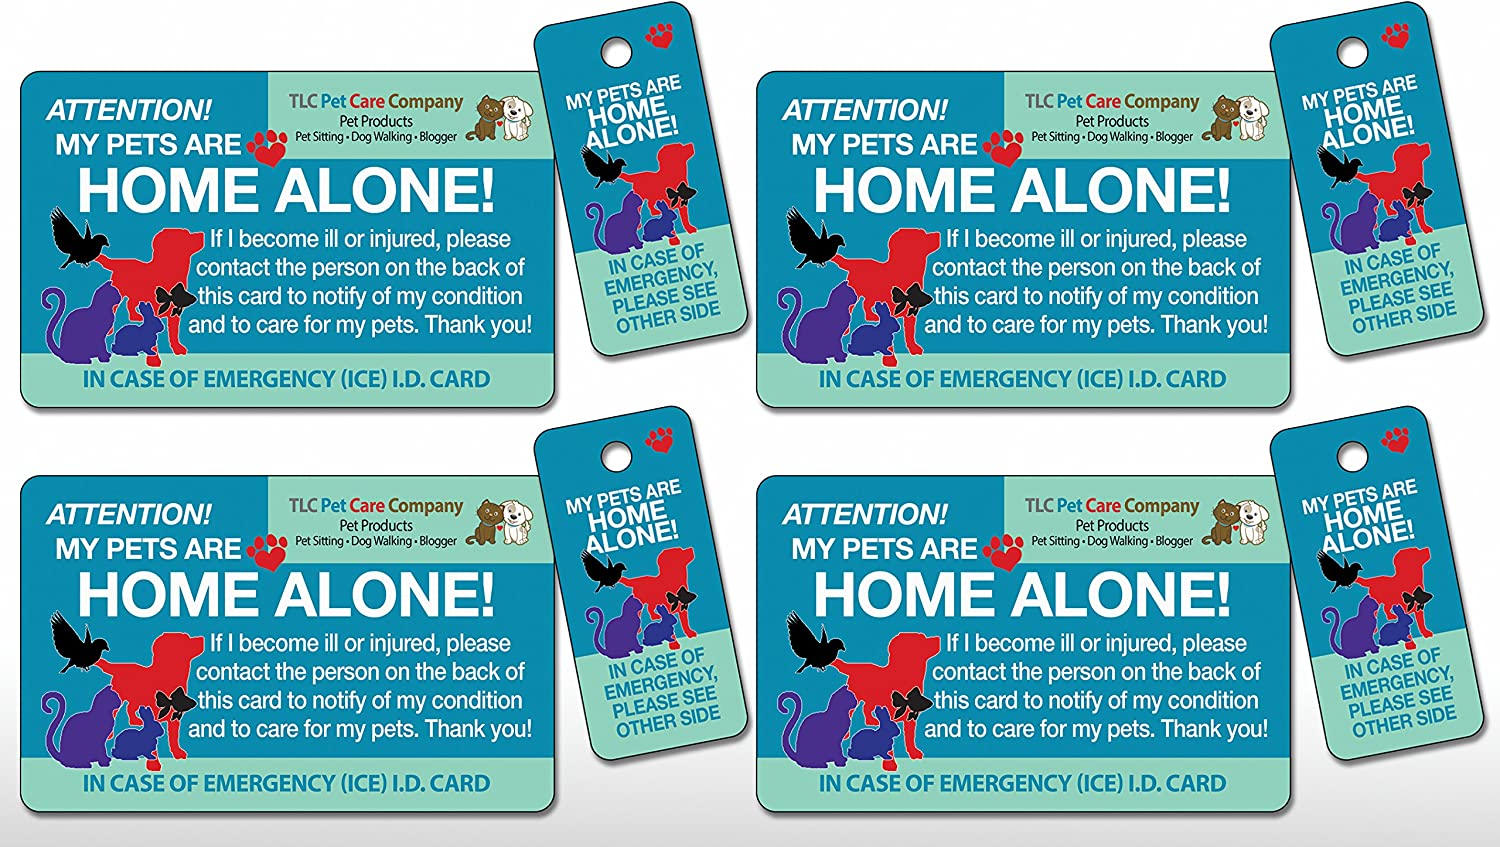 4 pk. Original Trademarked My Pets are Home Alone Alert Emergency Medical ICE ID Plastic Contact Wallet Card and Key Tag Dogs Cats (Qty. 4 from TLC)